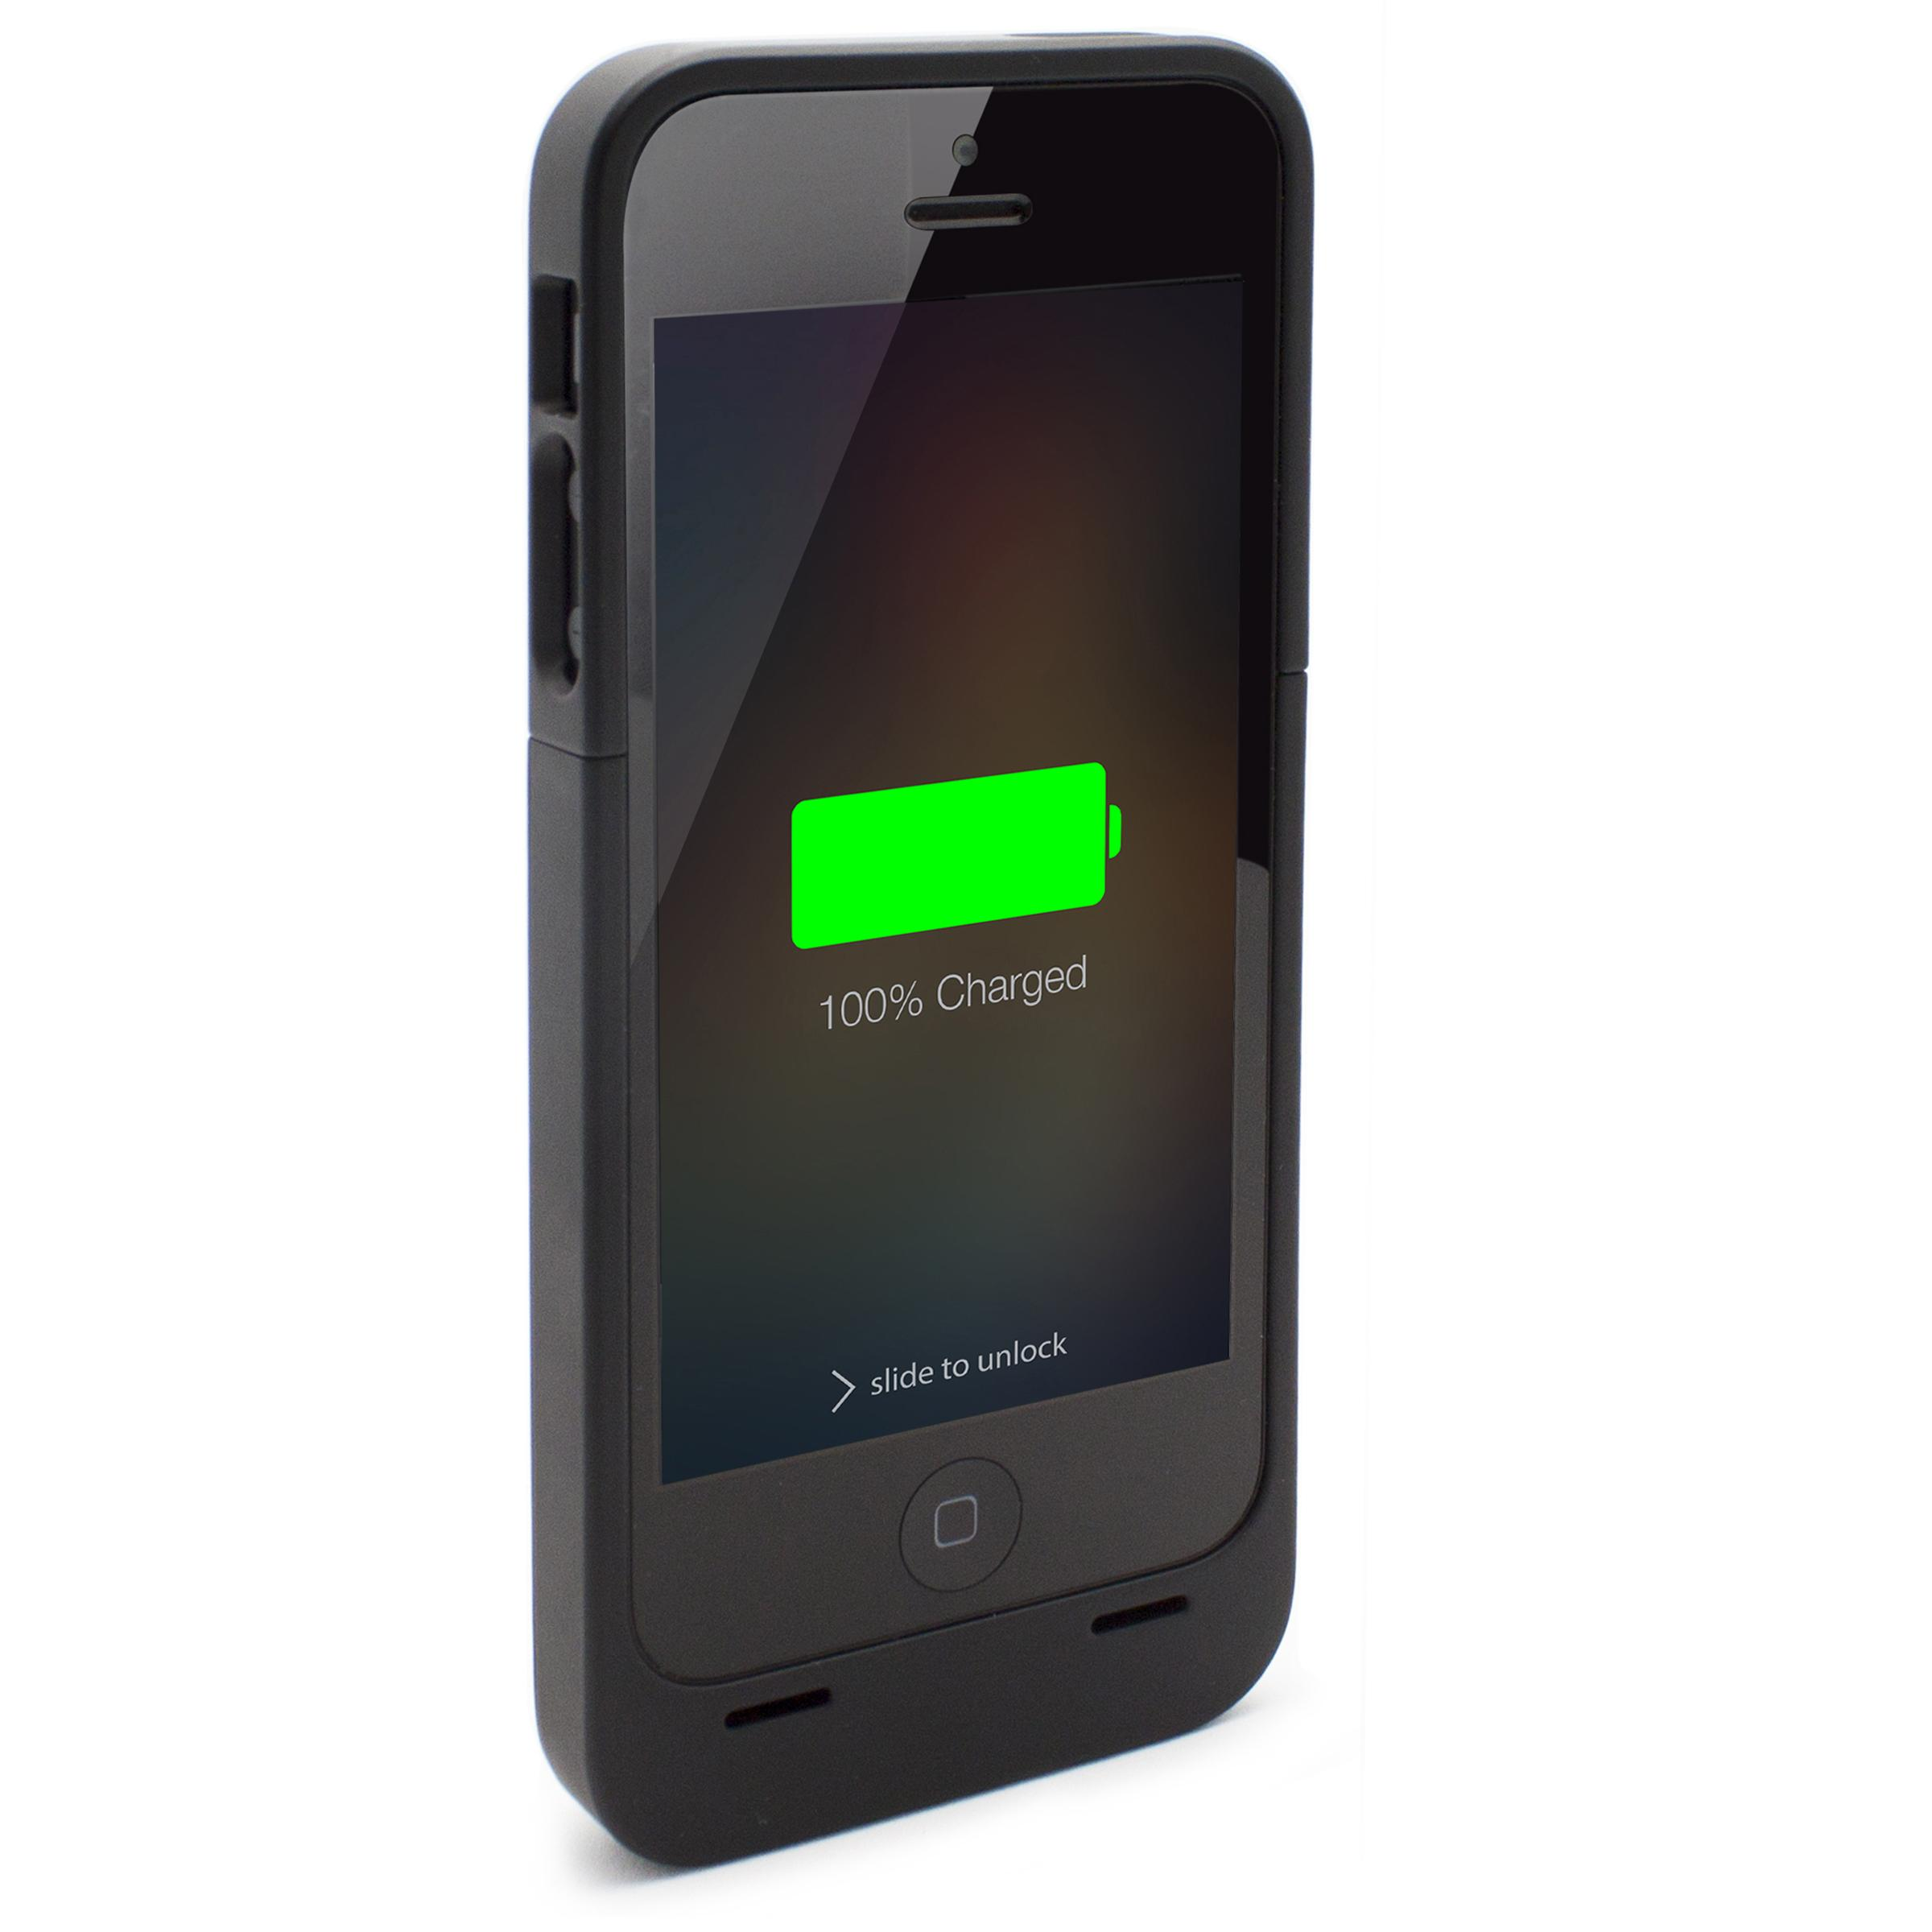 iphone 5s battery life iphone 5s battery lenmar meridian 2300 1815